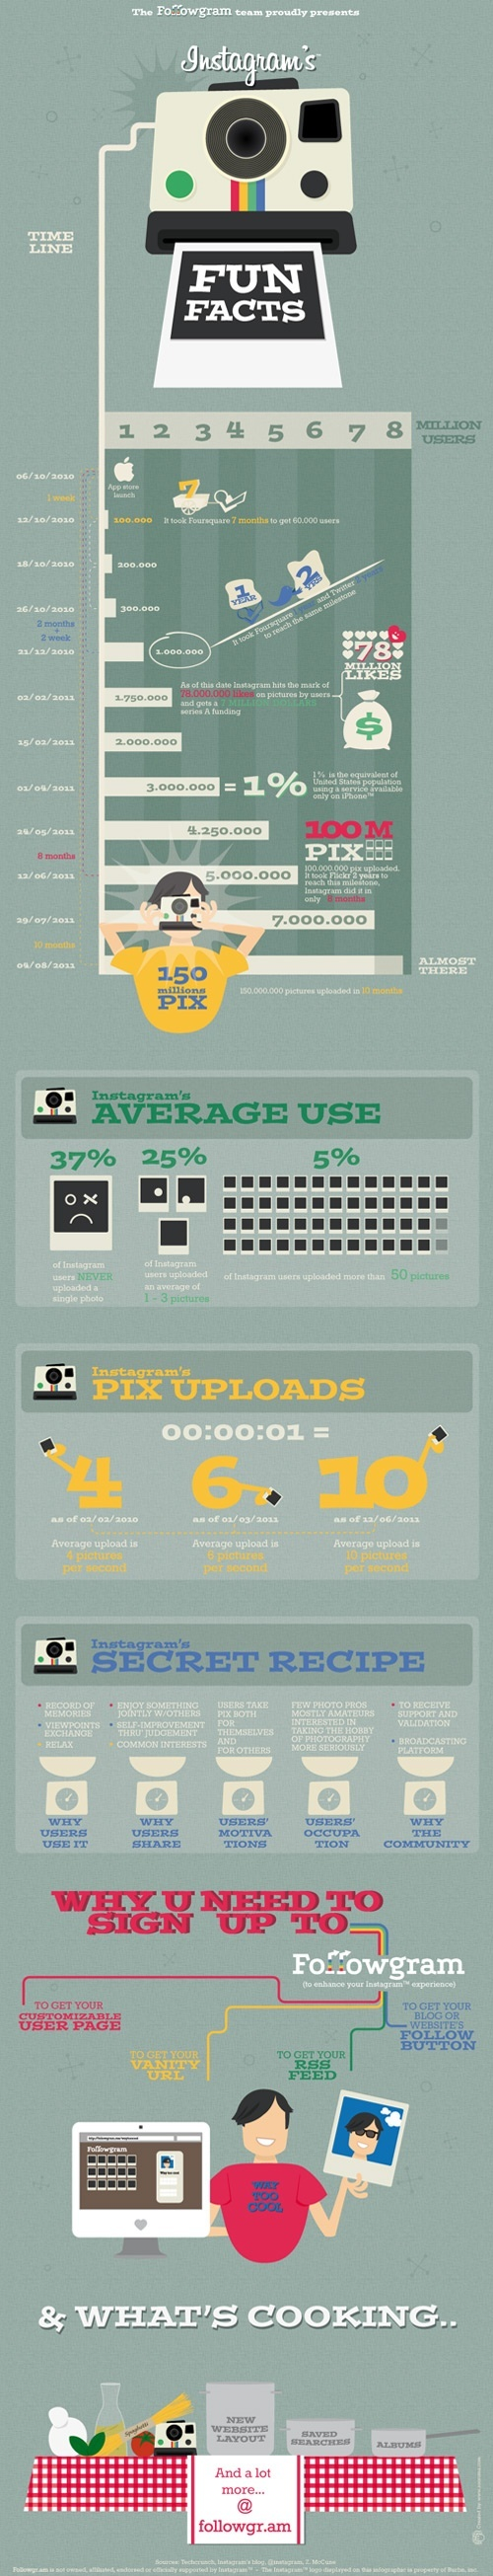 fun #instagram facts! #infographic